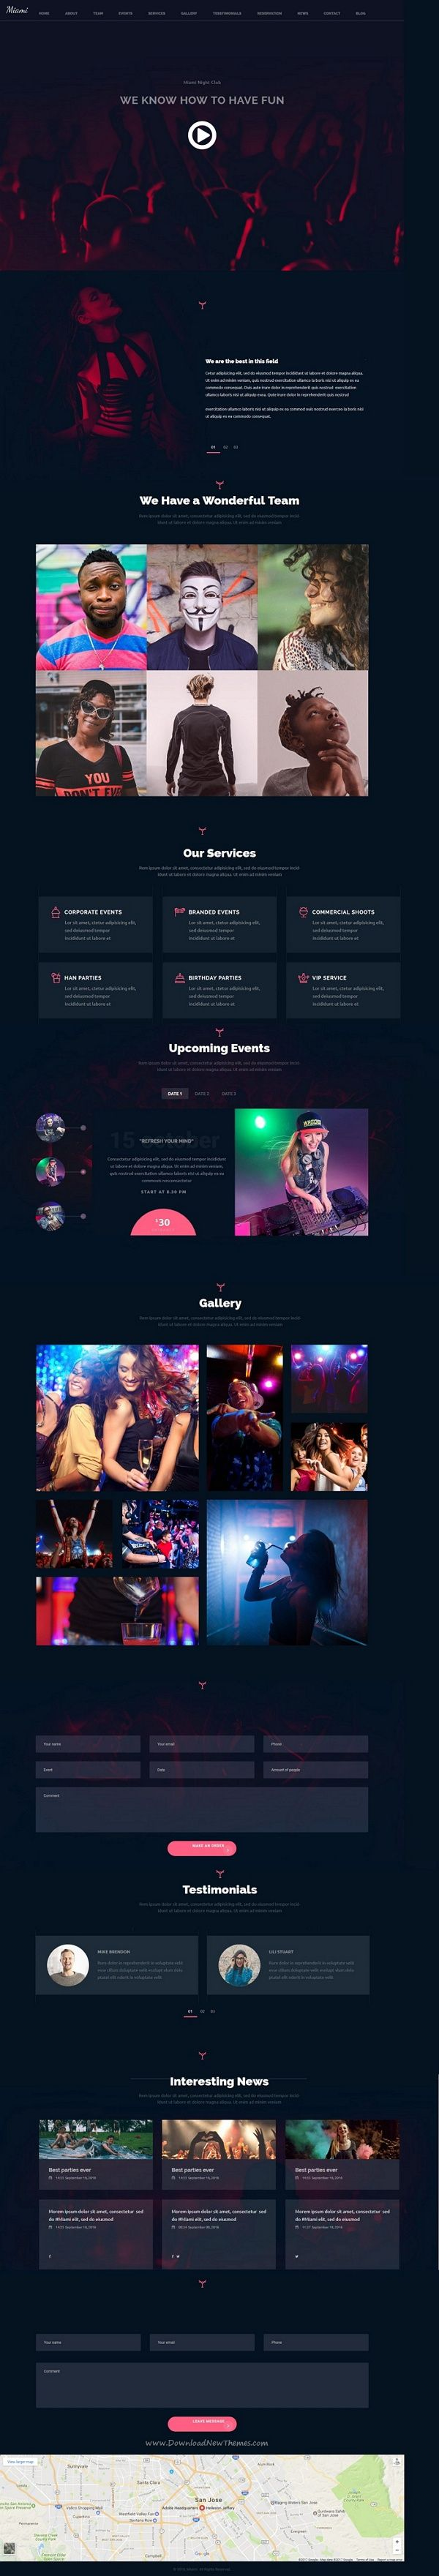 Miami is a powerful 3in1 #Adobe #Muse Template for any kind of Night Club, #Concert or Festival website with a modern design download now➩  https://themeforest.net/item/miami-night-club-responsive-adobe-muse-template/19475557?ref=Datasata